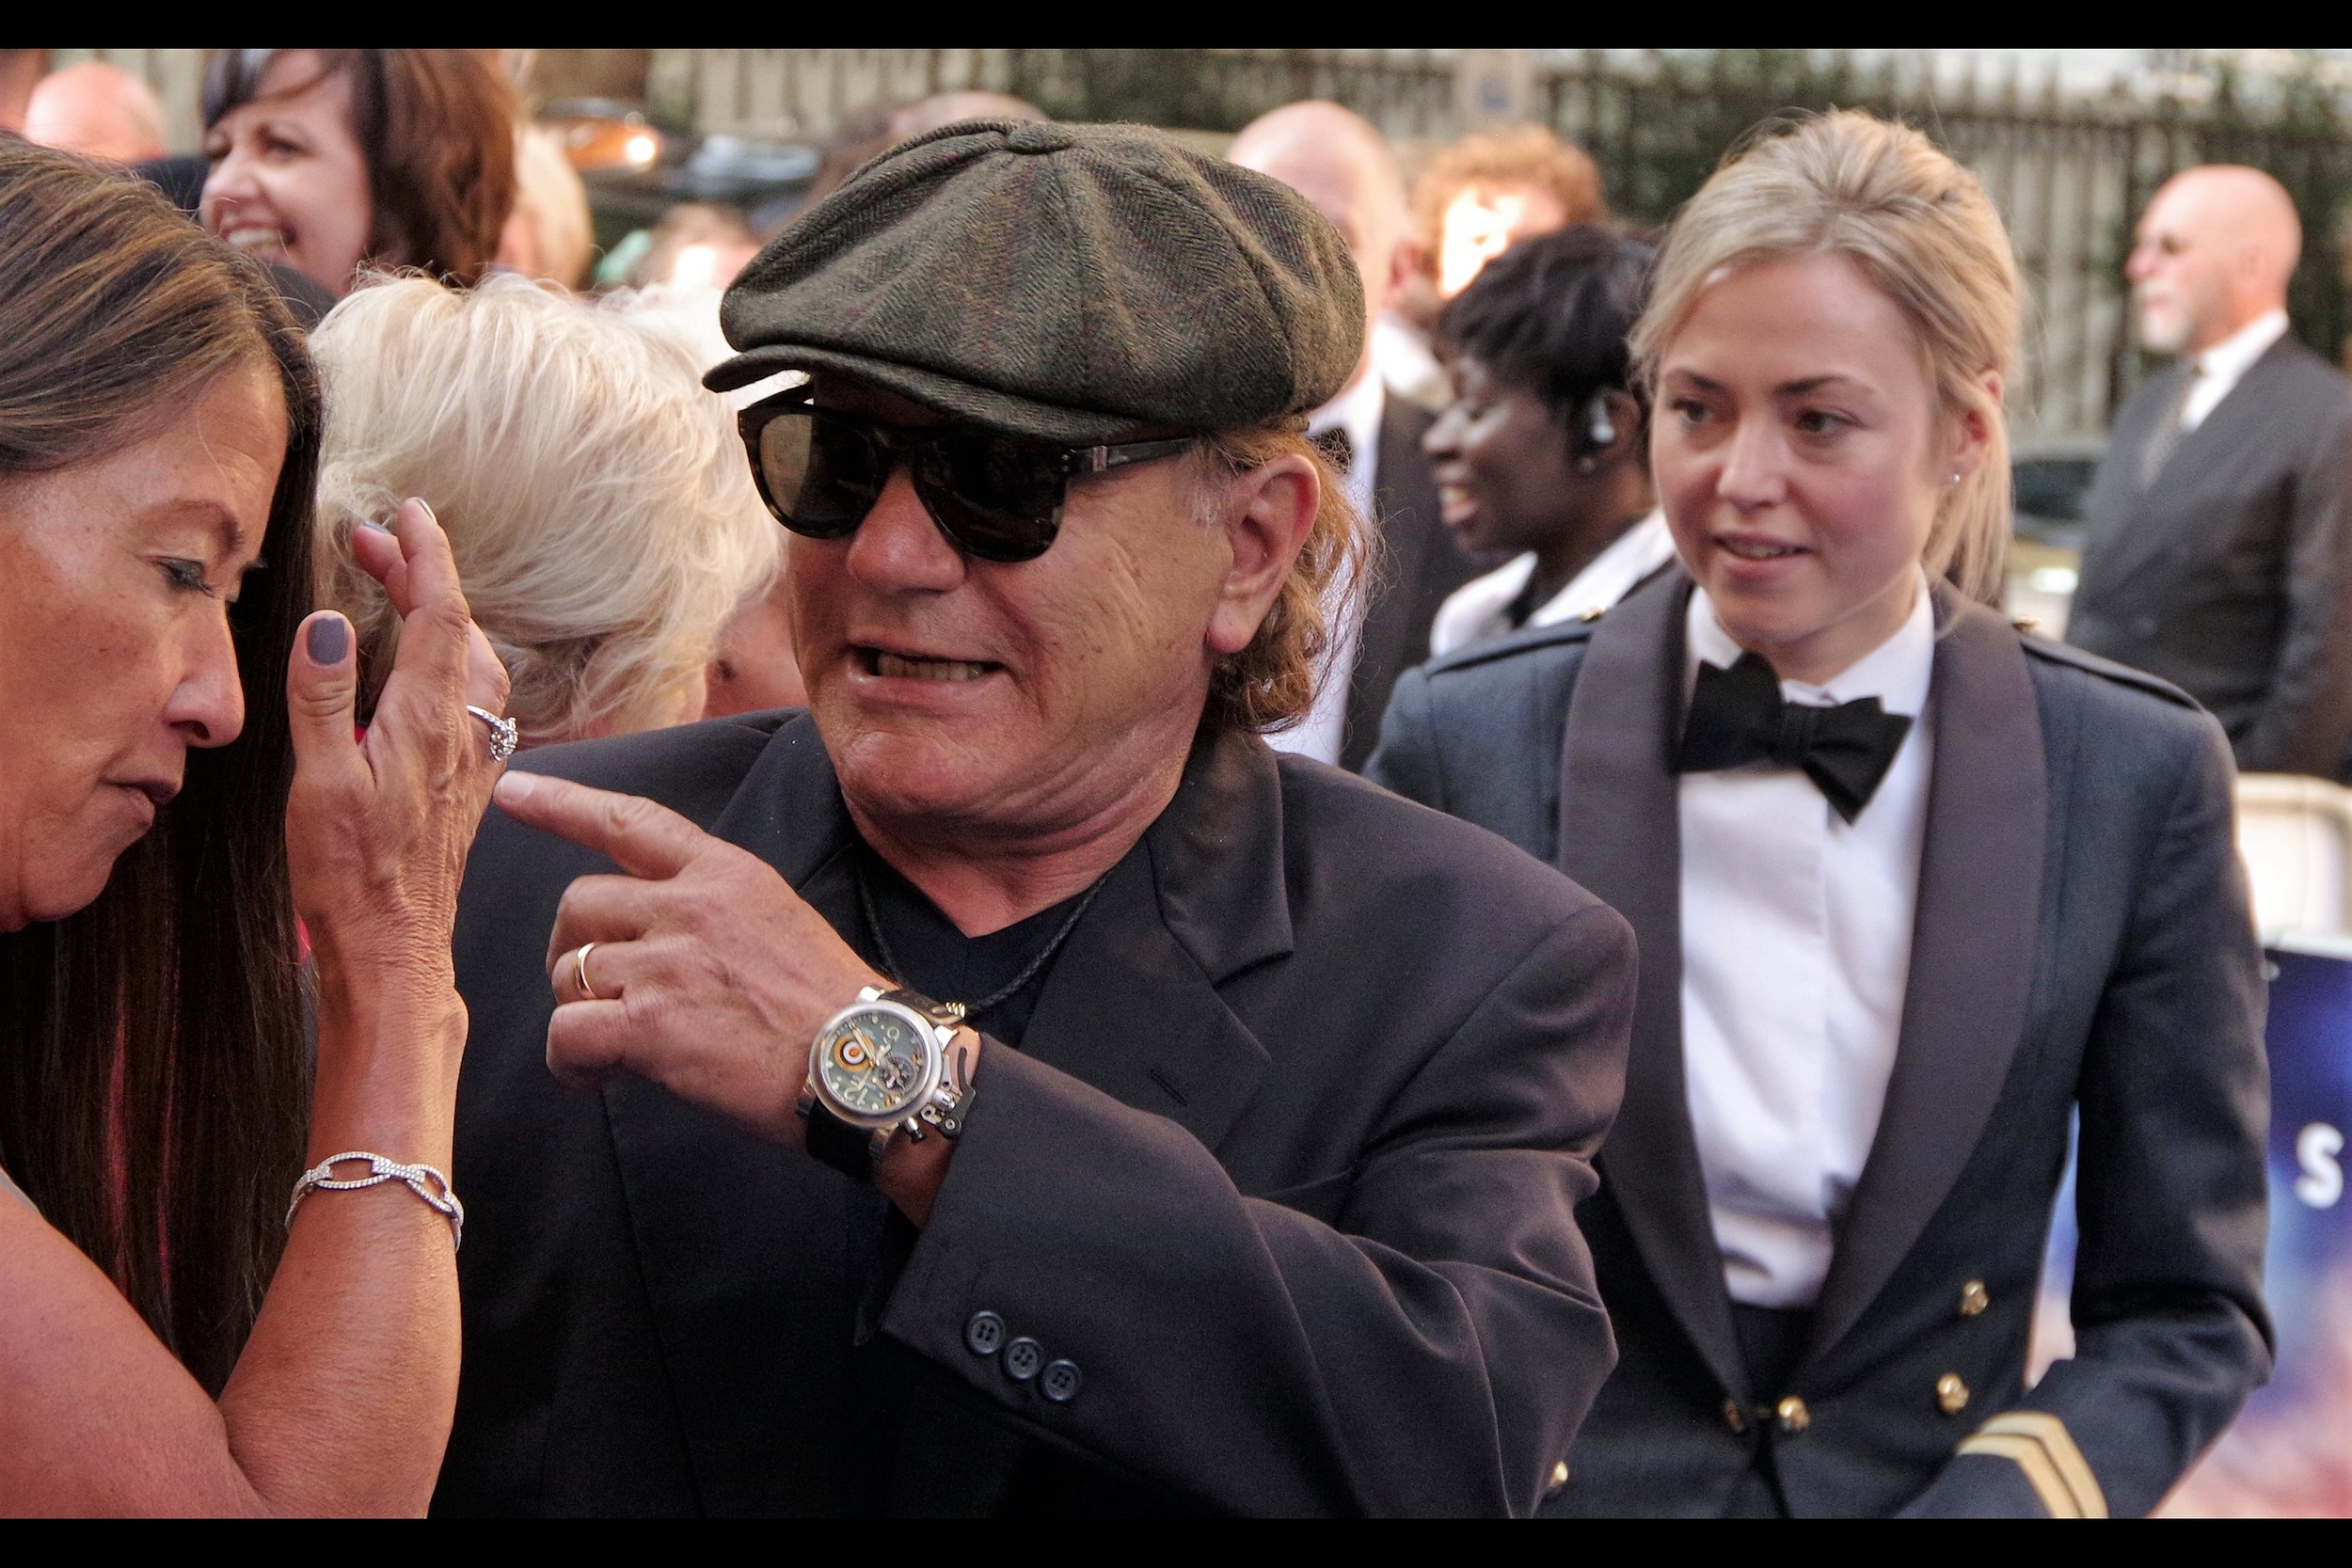 """I can point just as well as you can, ma'am""  - and in doing so, Brian Johnson shows off a rather cool RAF-inspired (?) wristwatch. And just for once I'm glad I'm ""only"" wearing a Japanese-made quartz watch rather than an even more incendiary Kienzle German Aviator watch to this premiere."